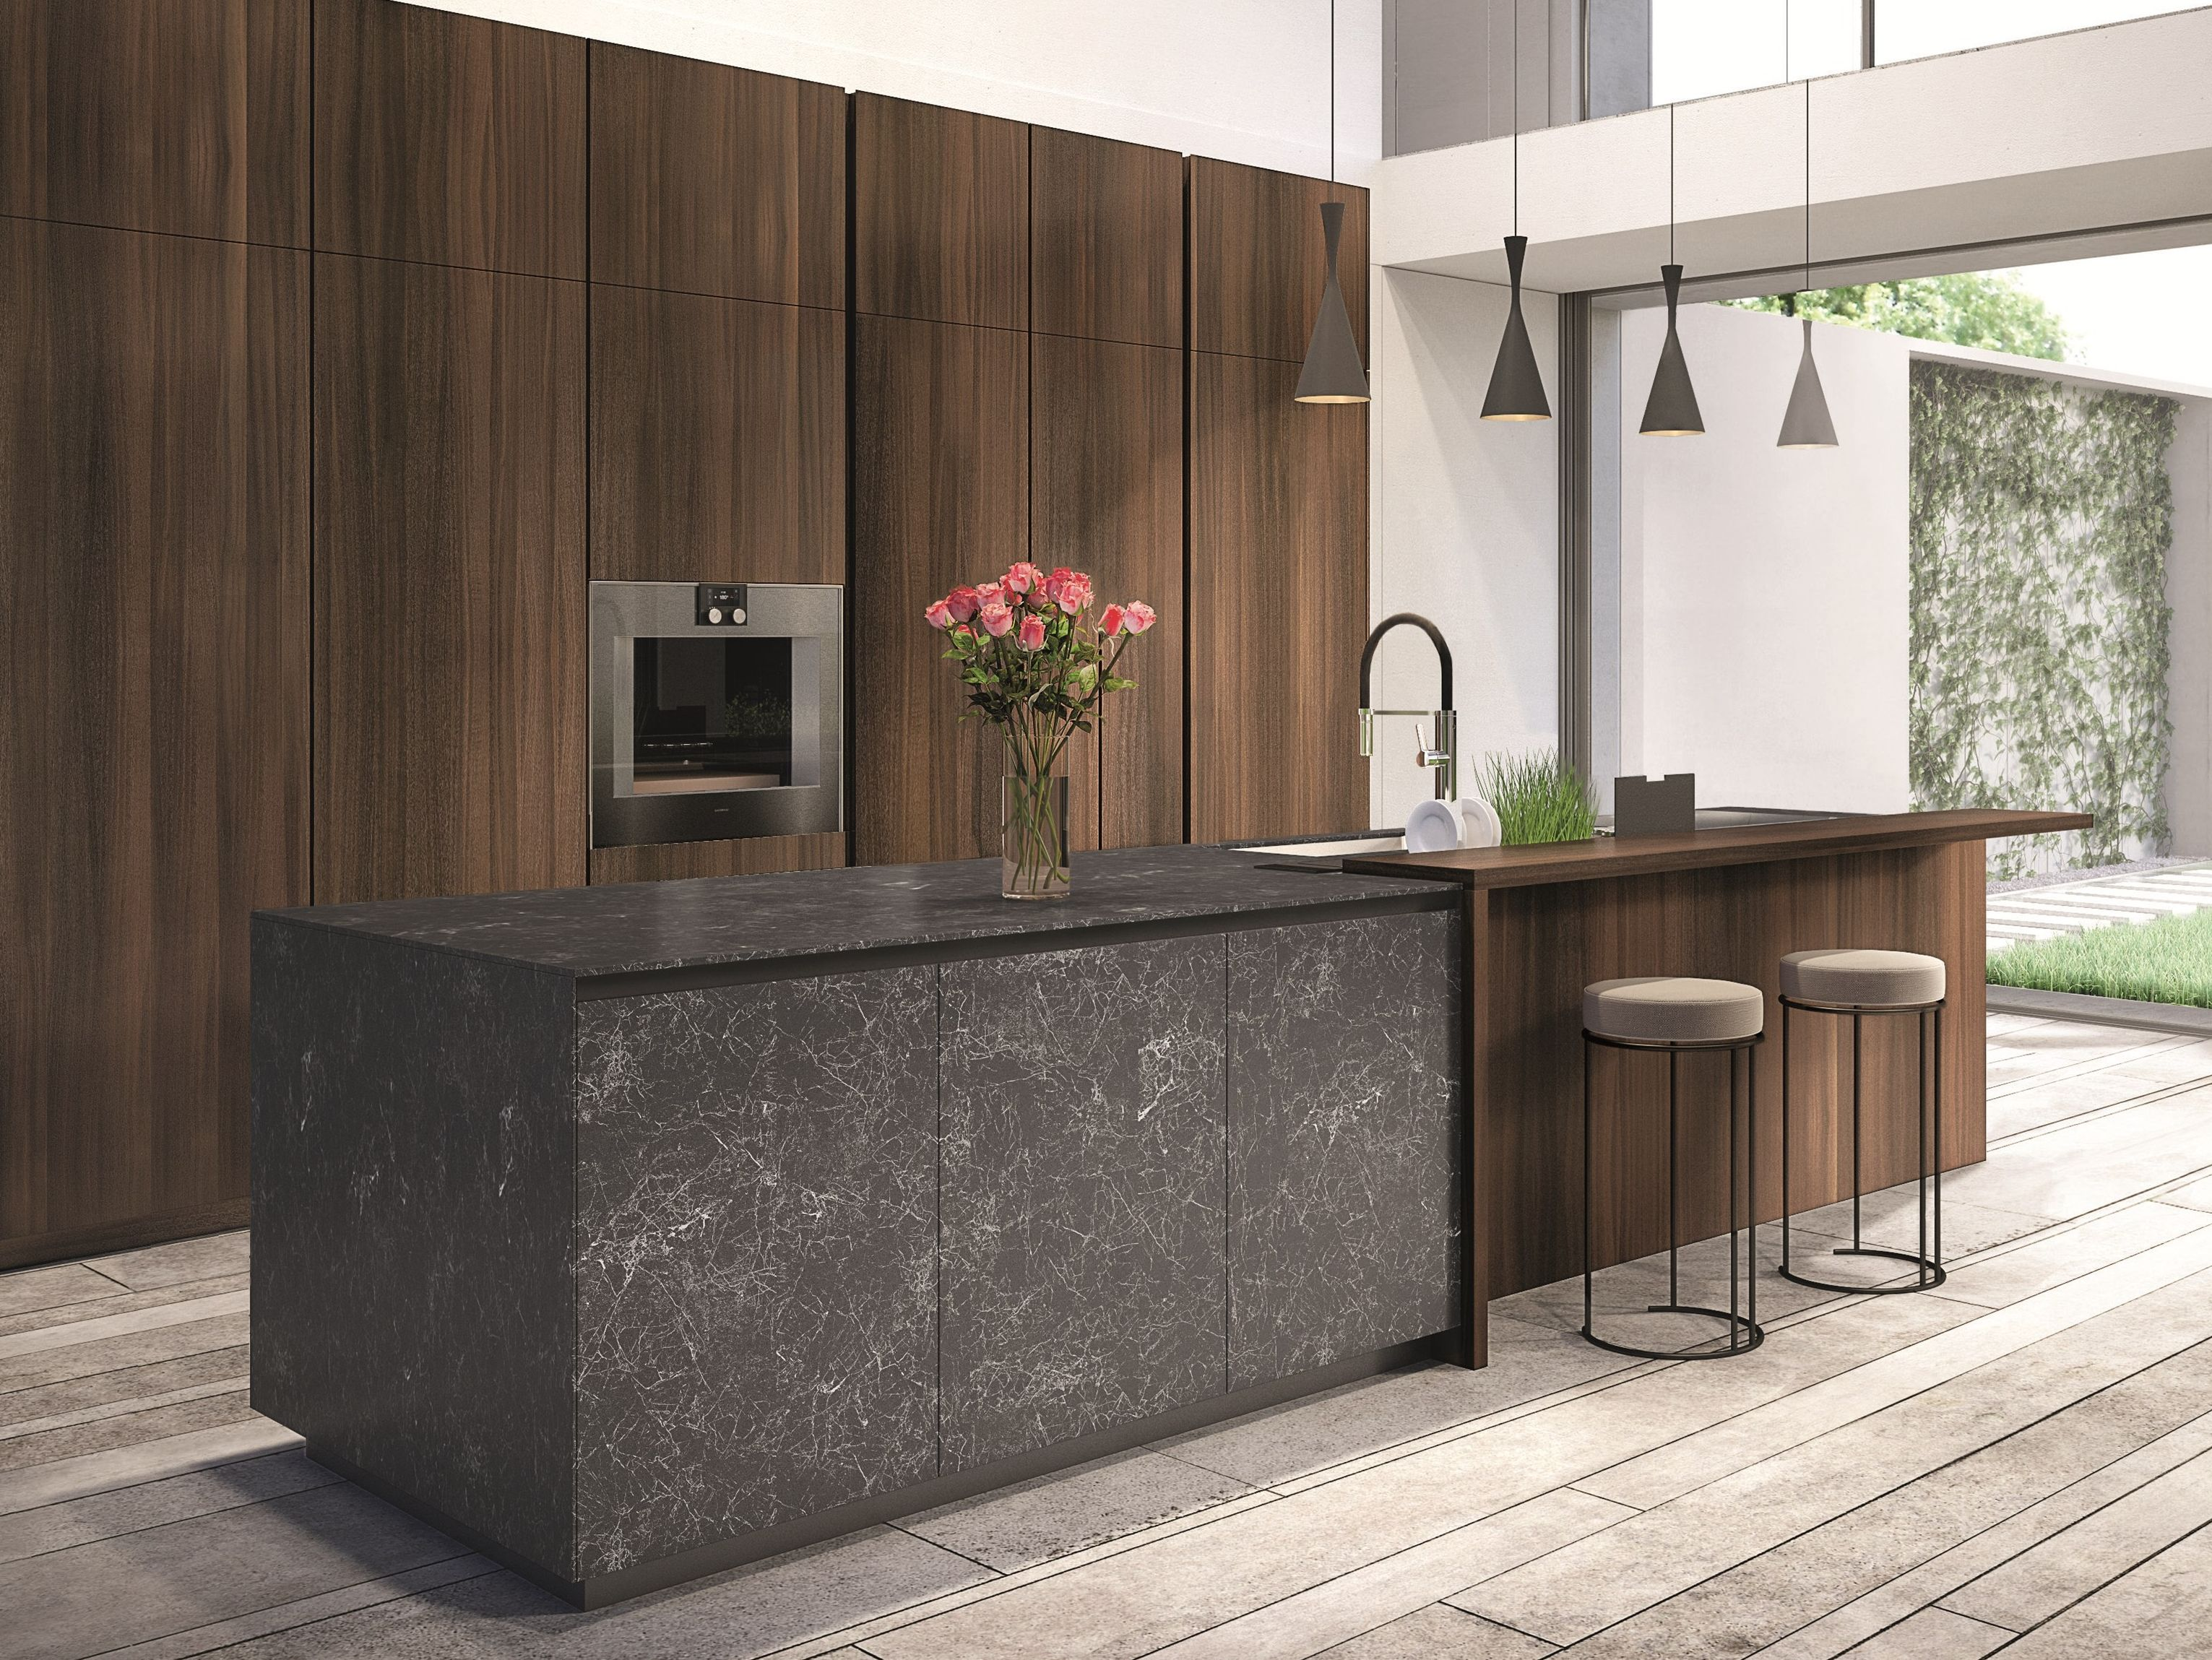 TELERO | Porcelain stoneware kitchen By Euromobil design ...